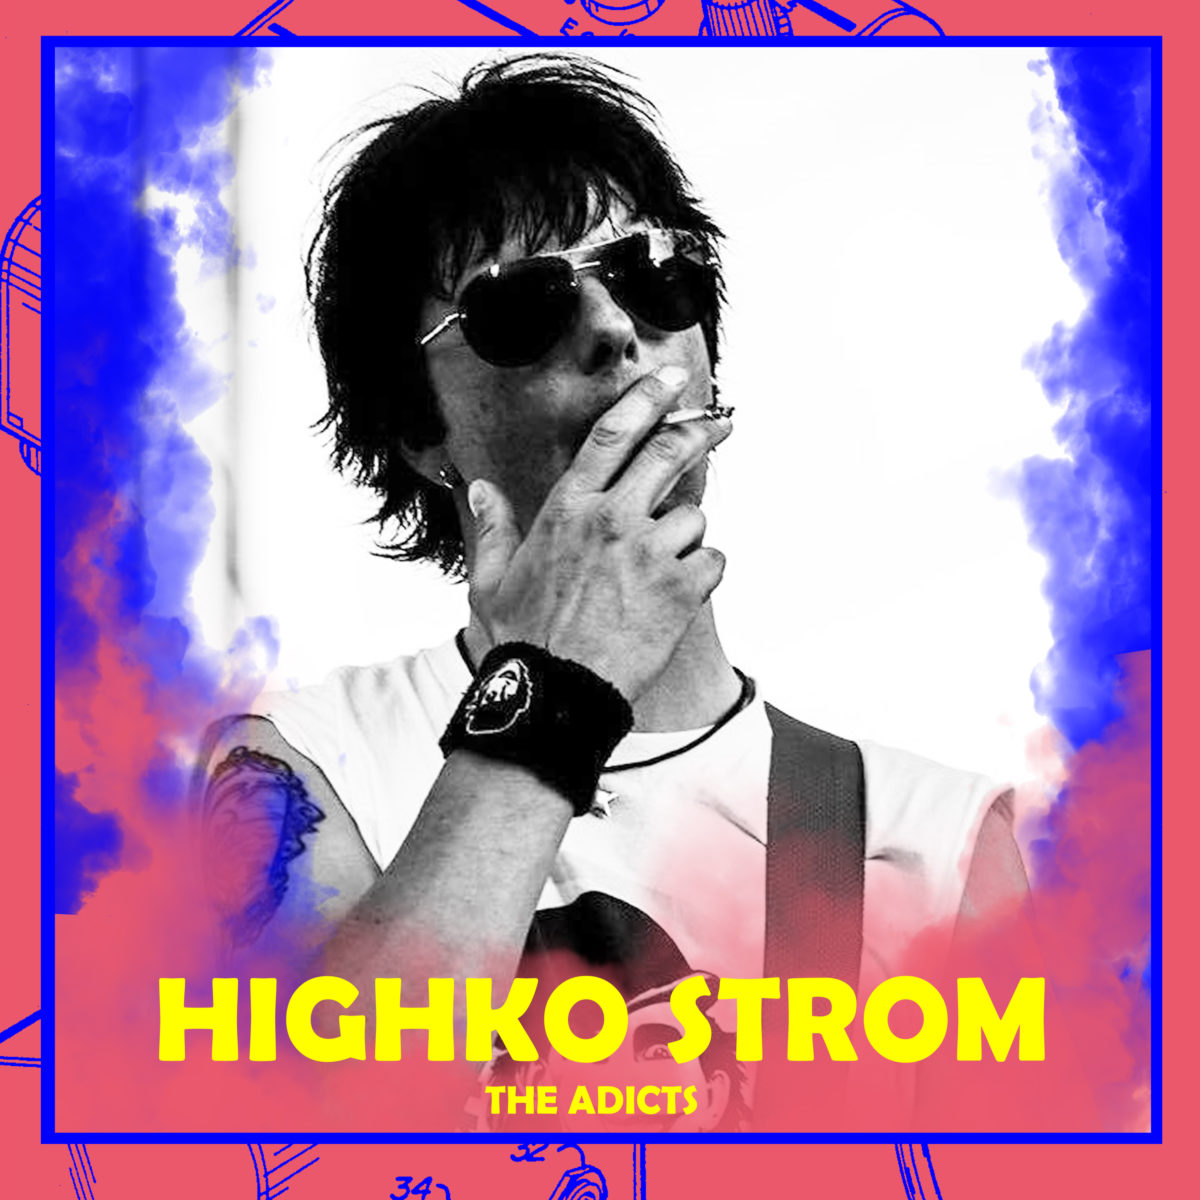 Highko Strom (The Adicts)